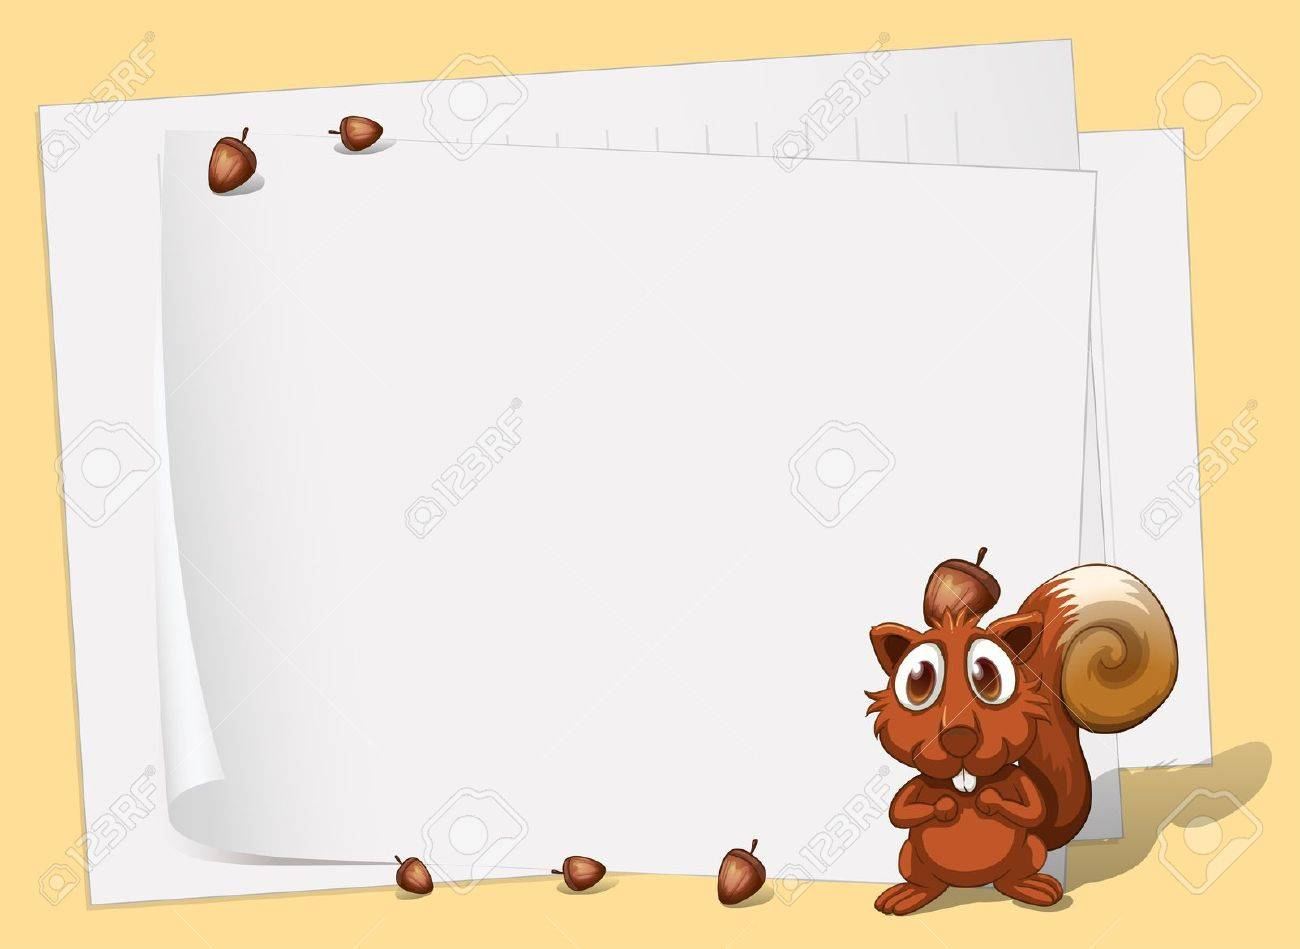 Illustration of a squirrel in front of the empty papers Stock Vector - 21658787